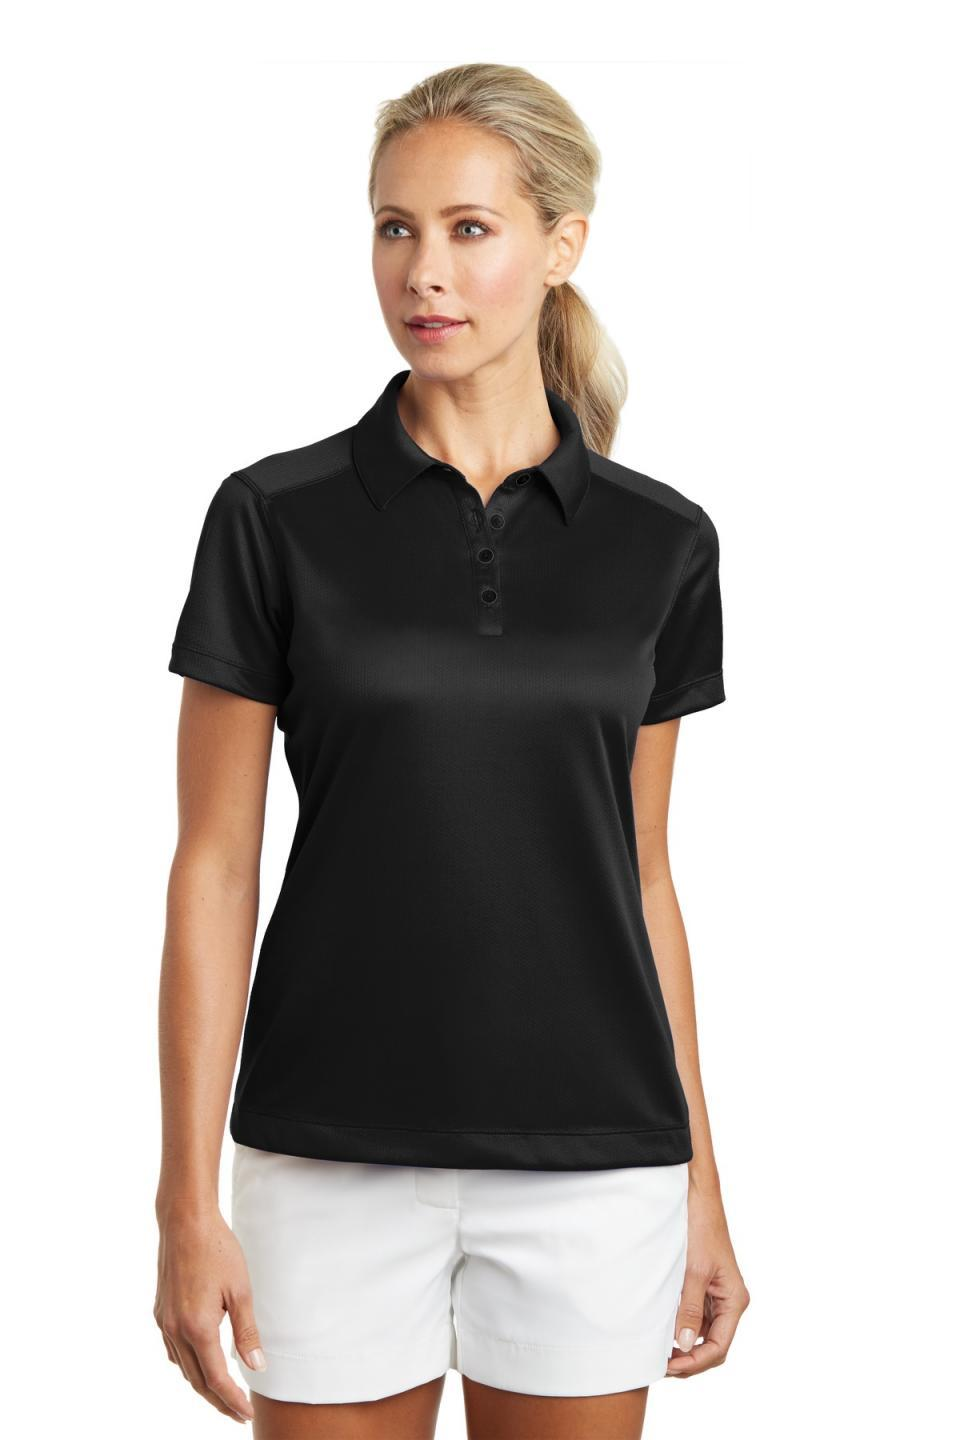 Nike Women's Dri-FIT Pebble Texture Polo